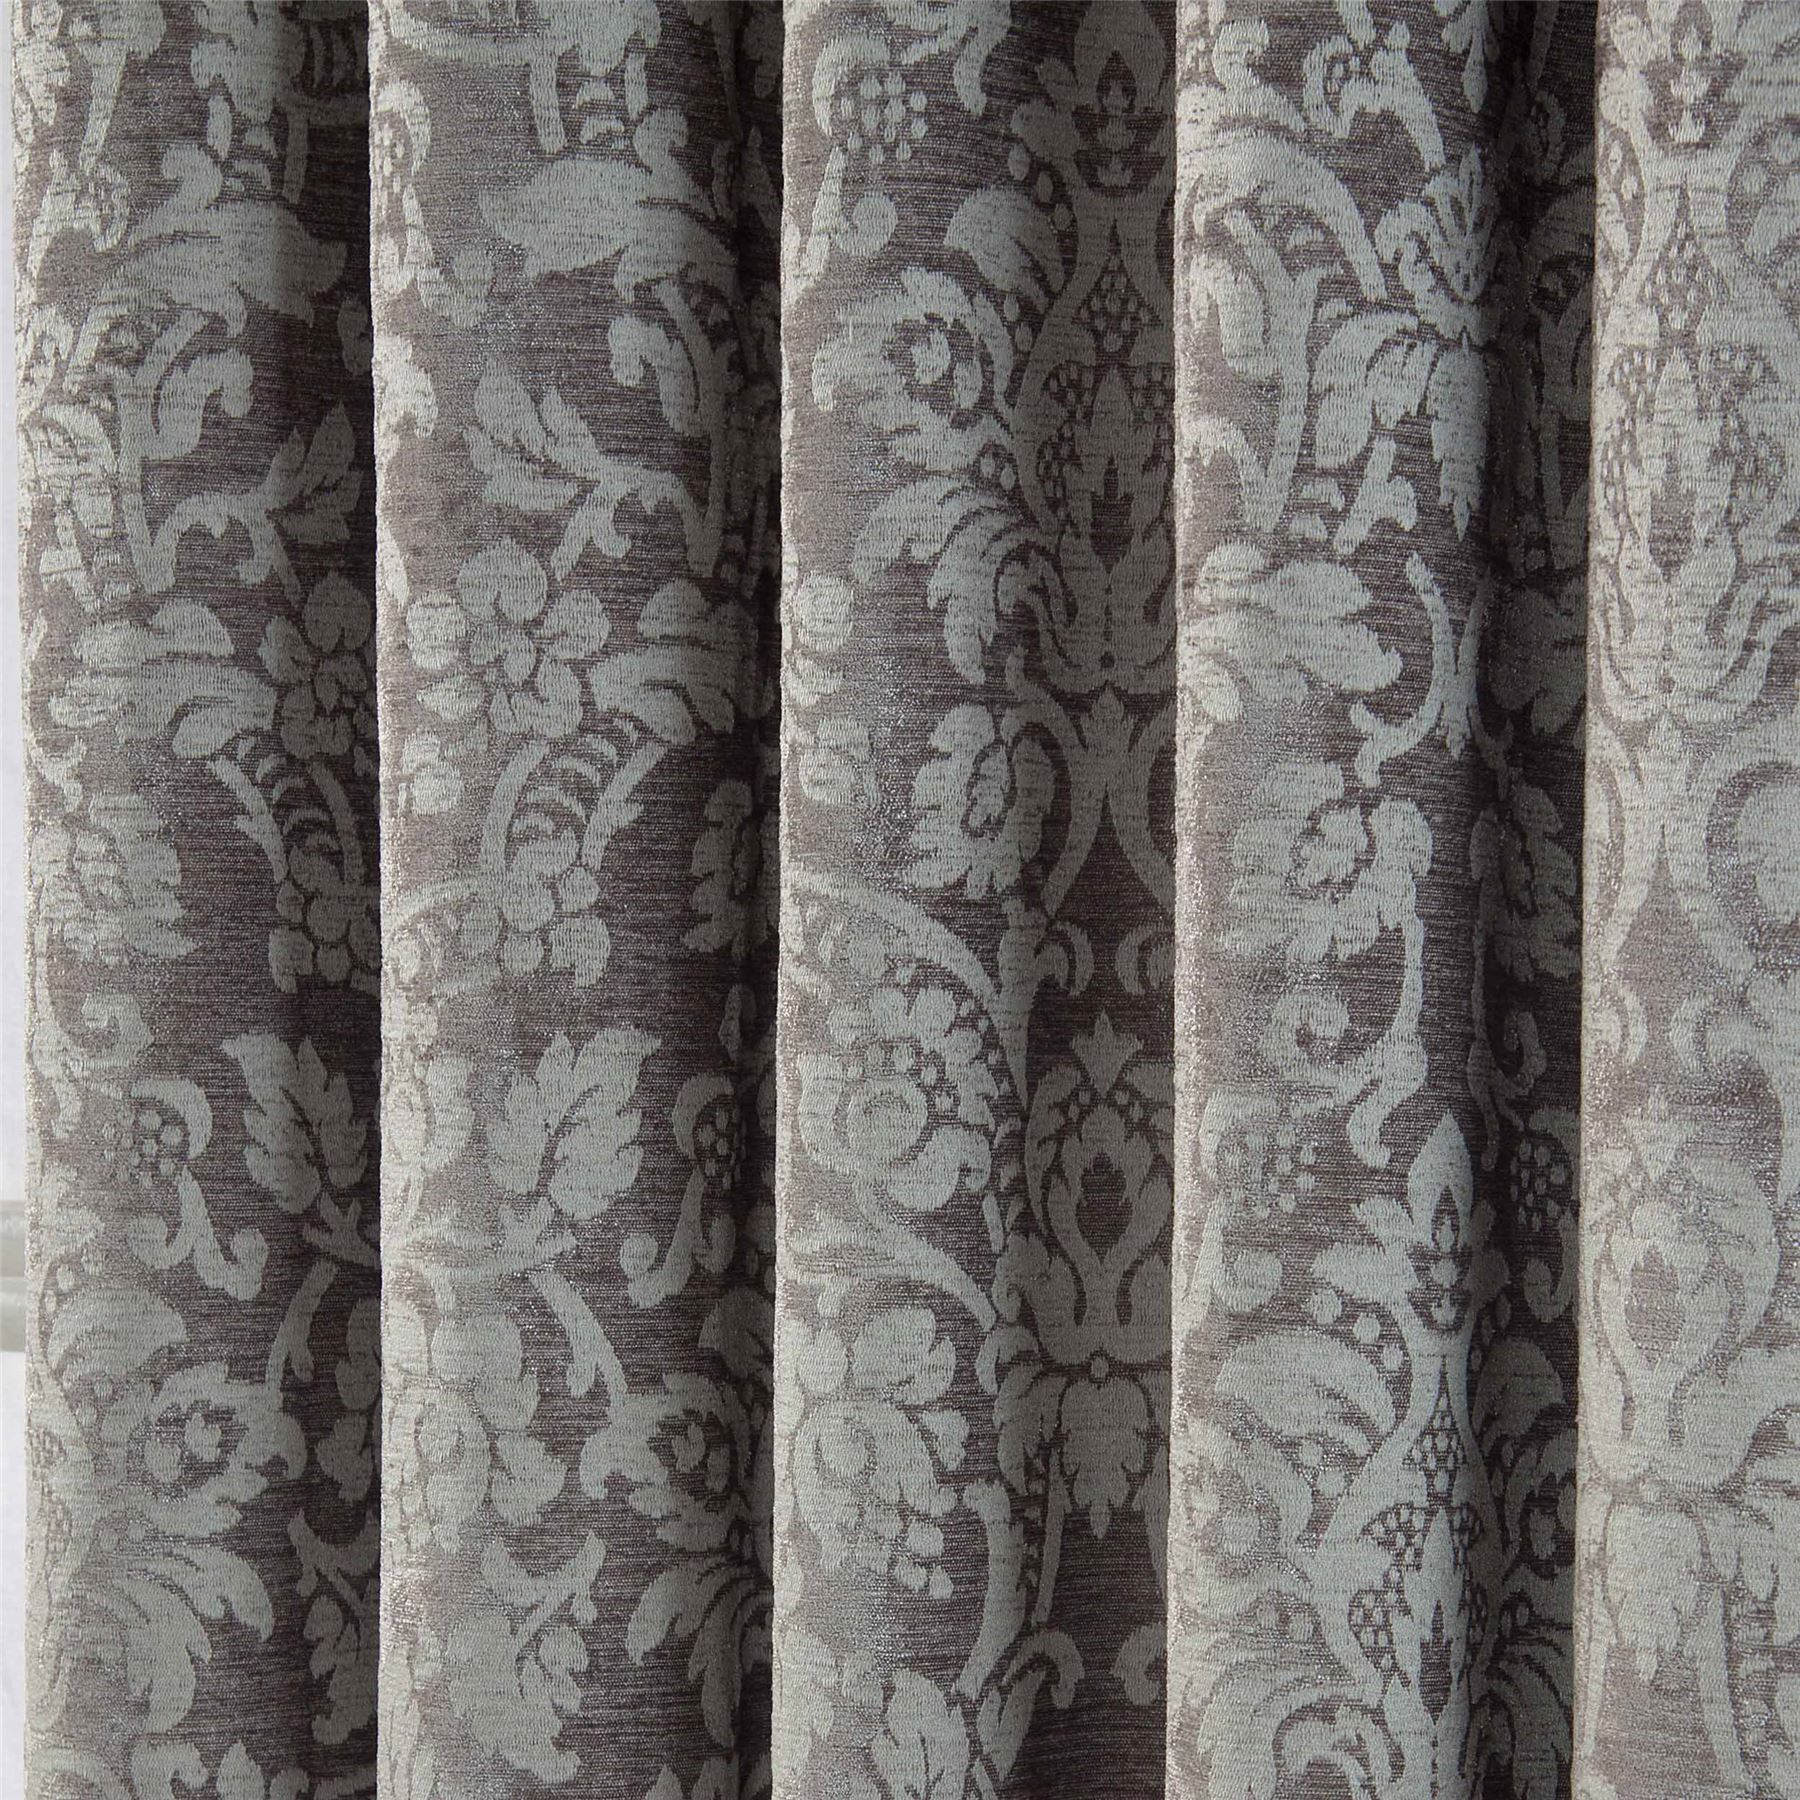 natural ready and pin eylet eyelet fabrics uk curtains terrys in house curtain bedrooms dalby made